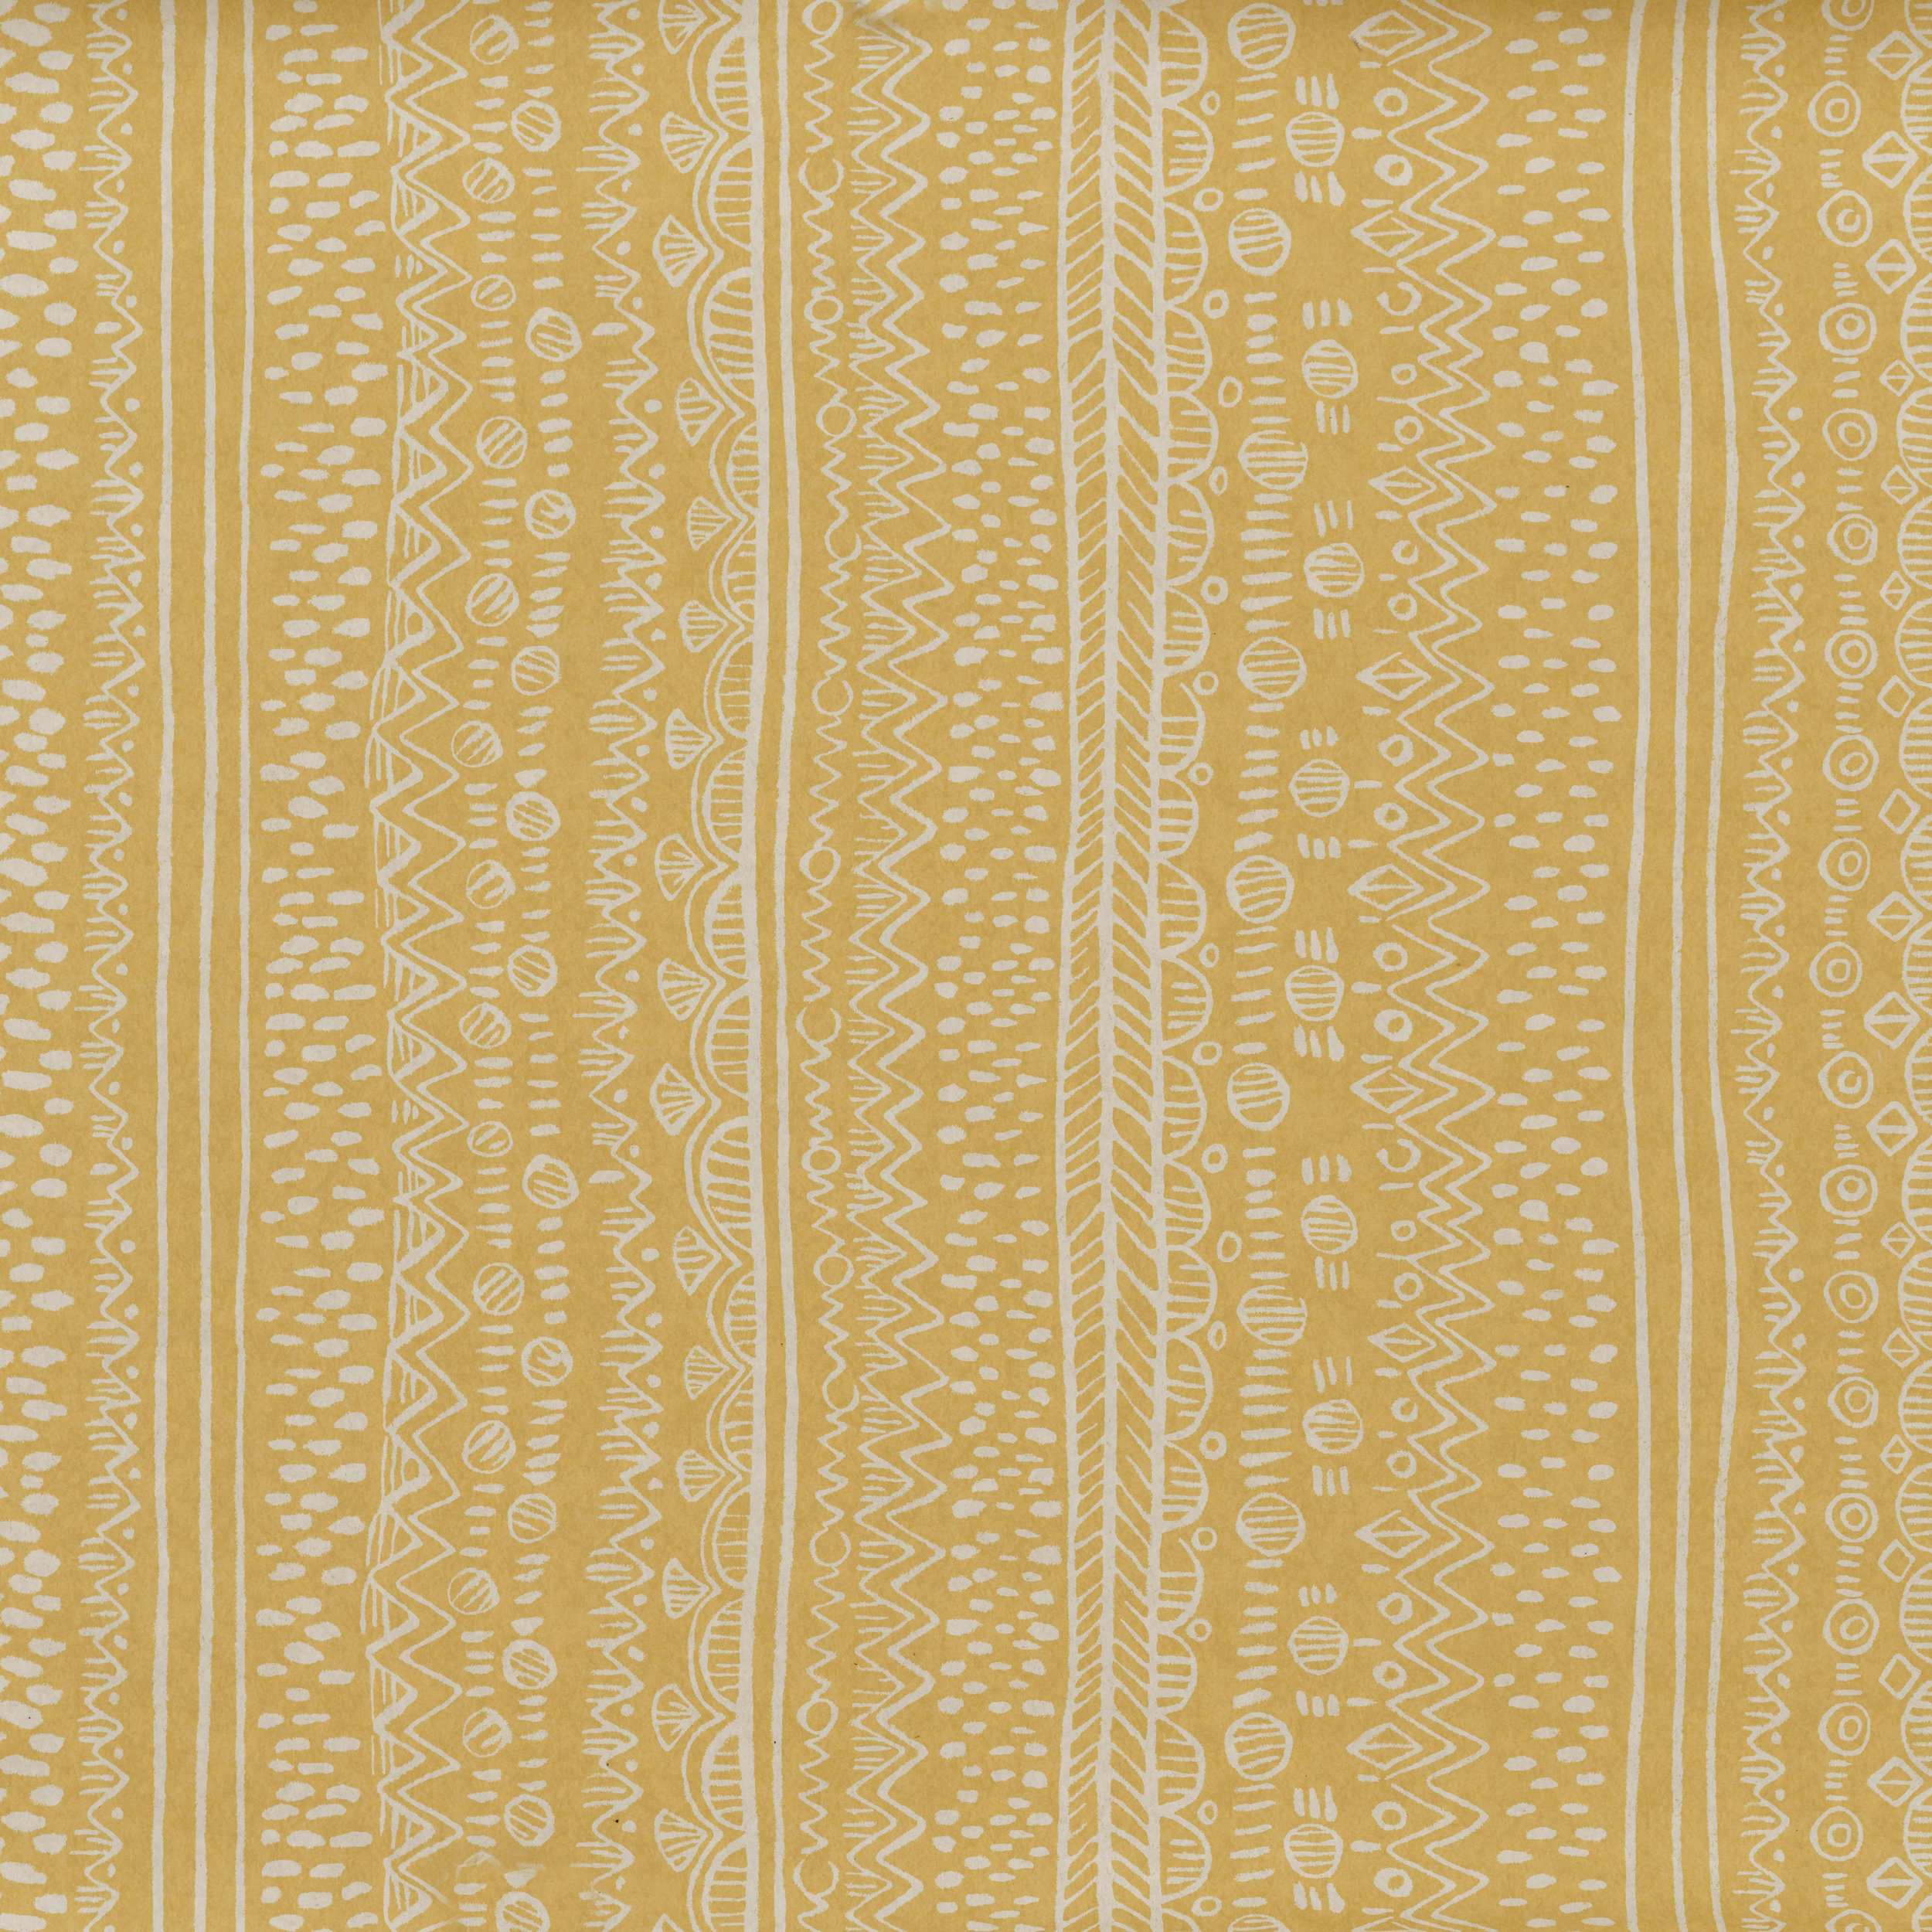 <p><strong>KIRBY</strong>ochre 682-01<a href=/the-spencer-collection/kirby-ochre-682-01>More →</a></p>